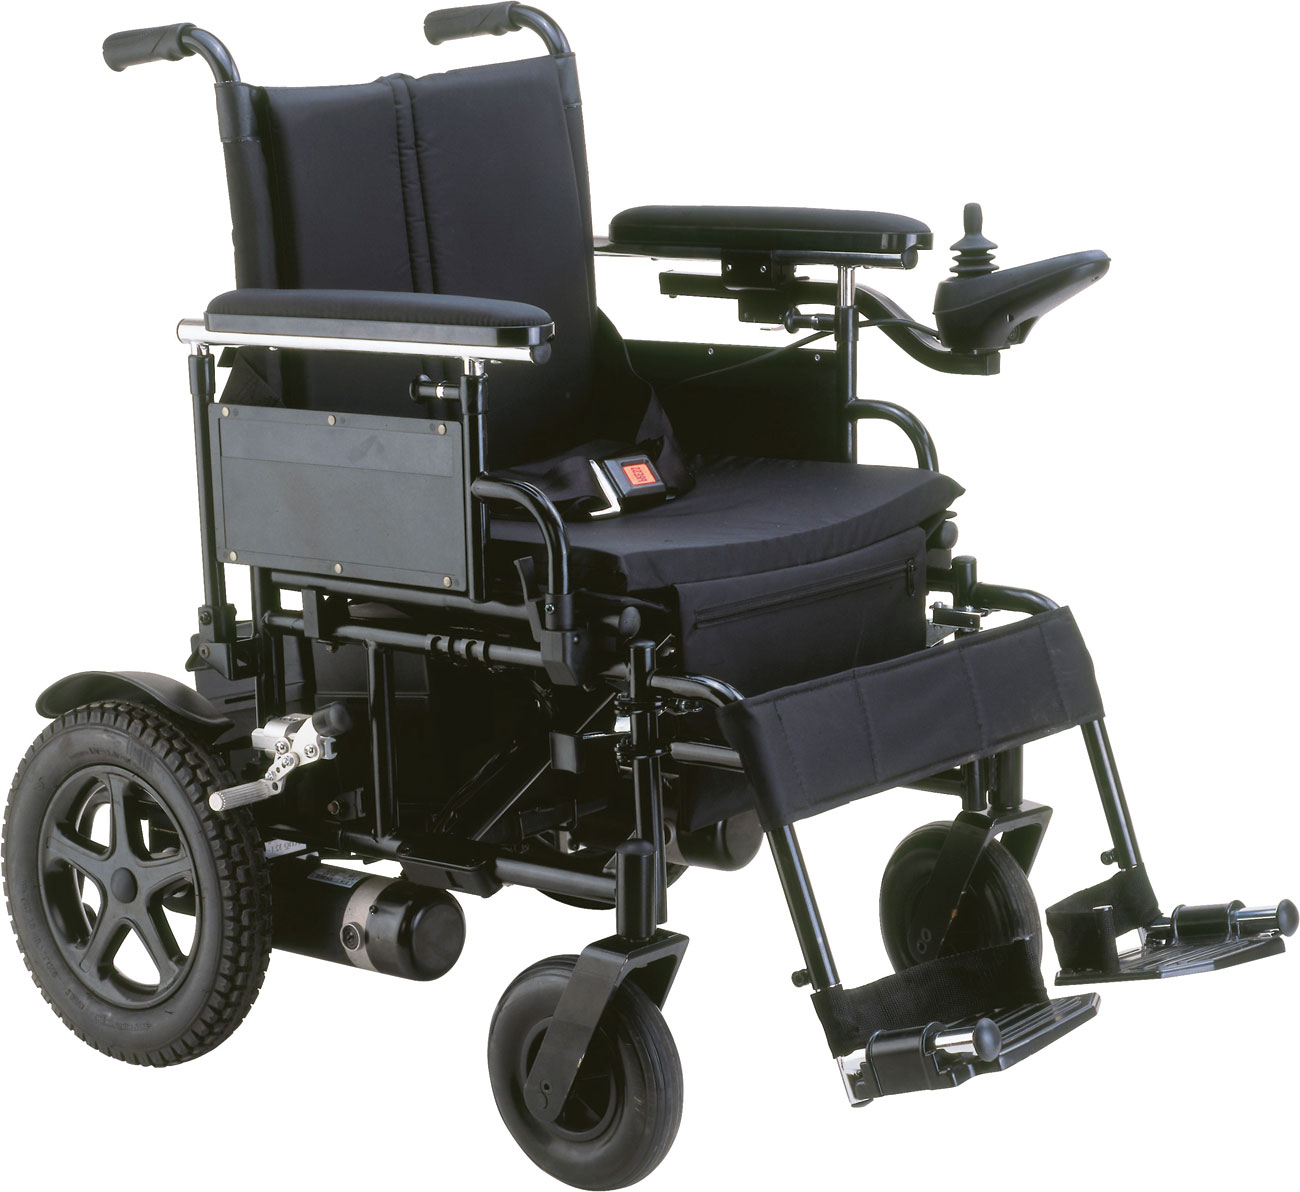 Cirrus Plus EC Folding Rear-Wheel Drive Power Wheelchair